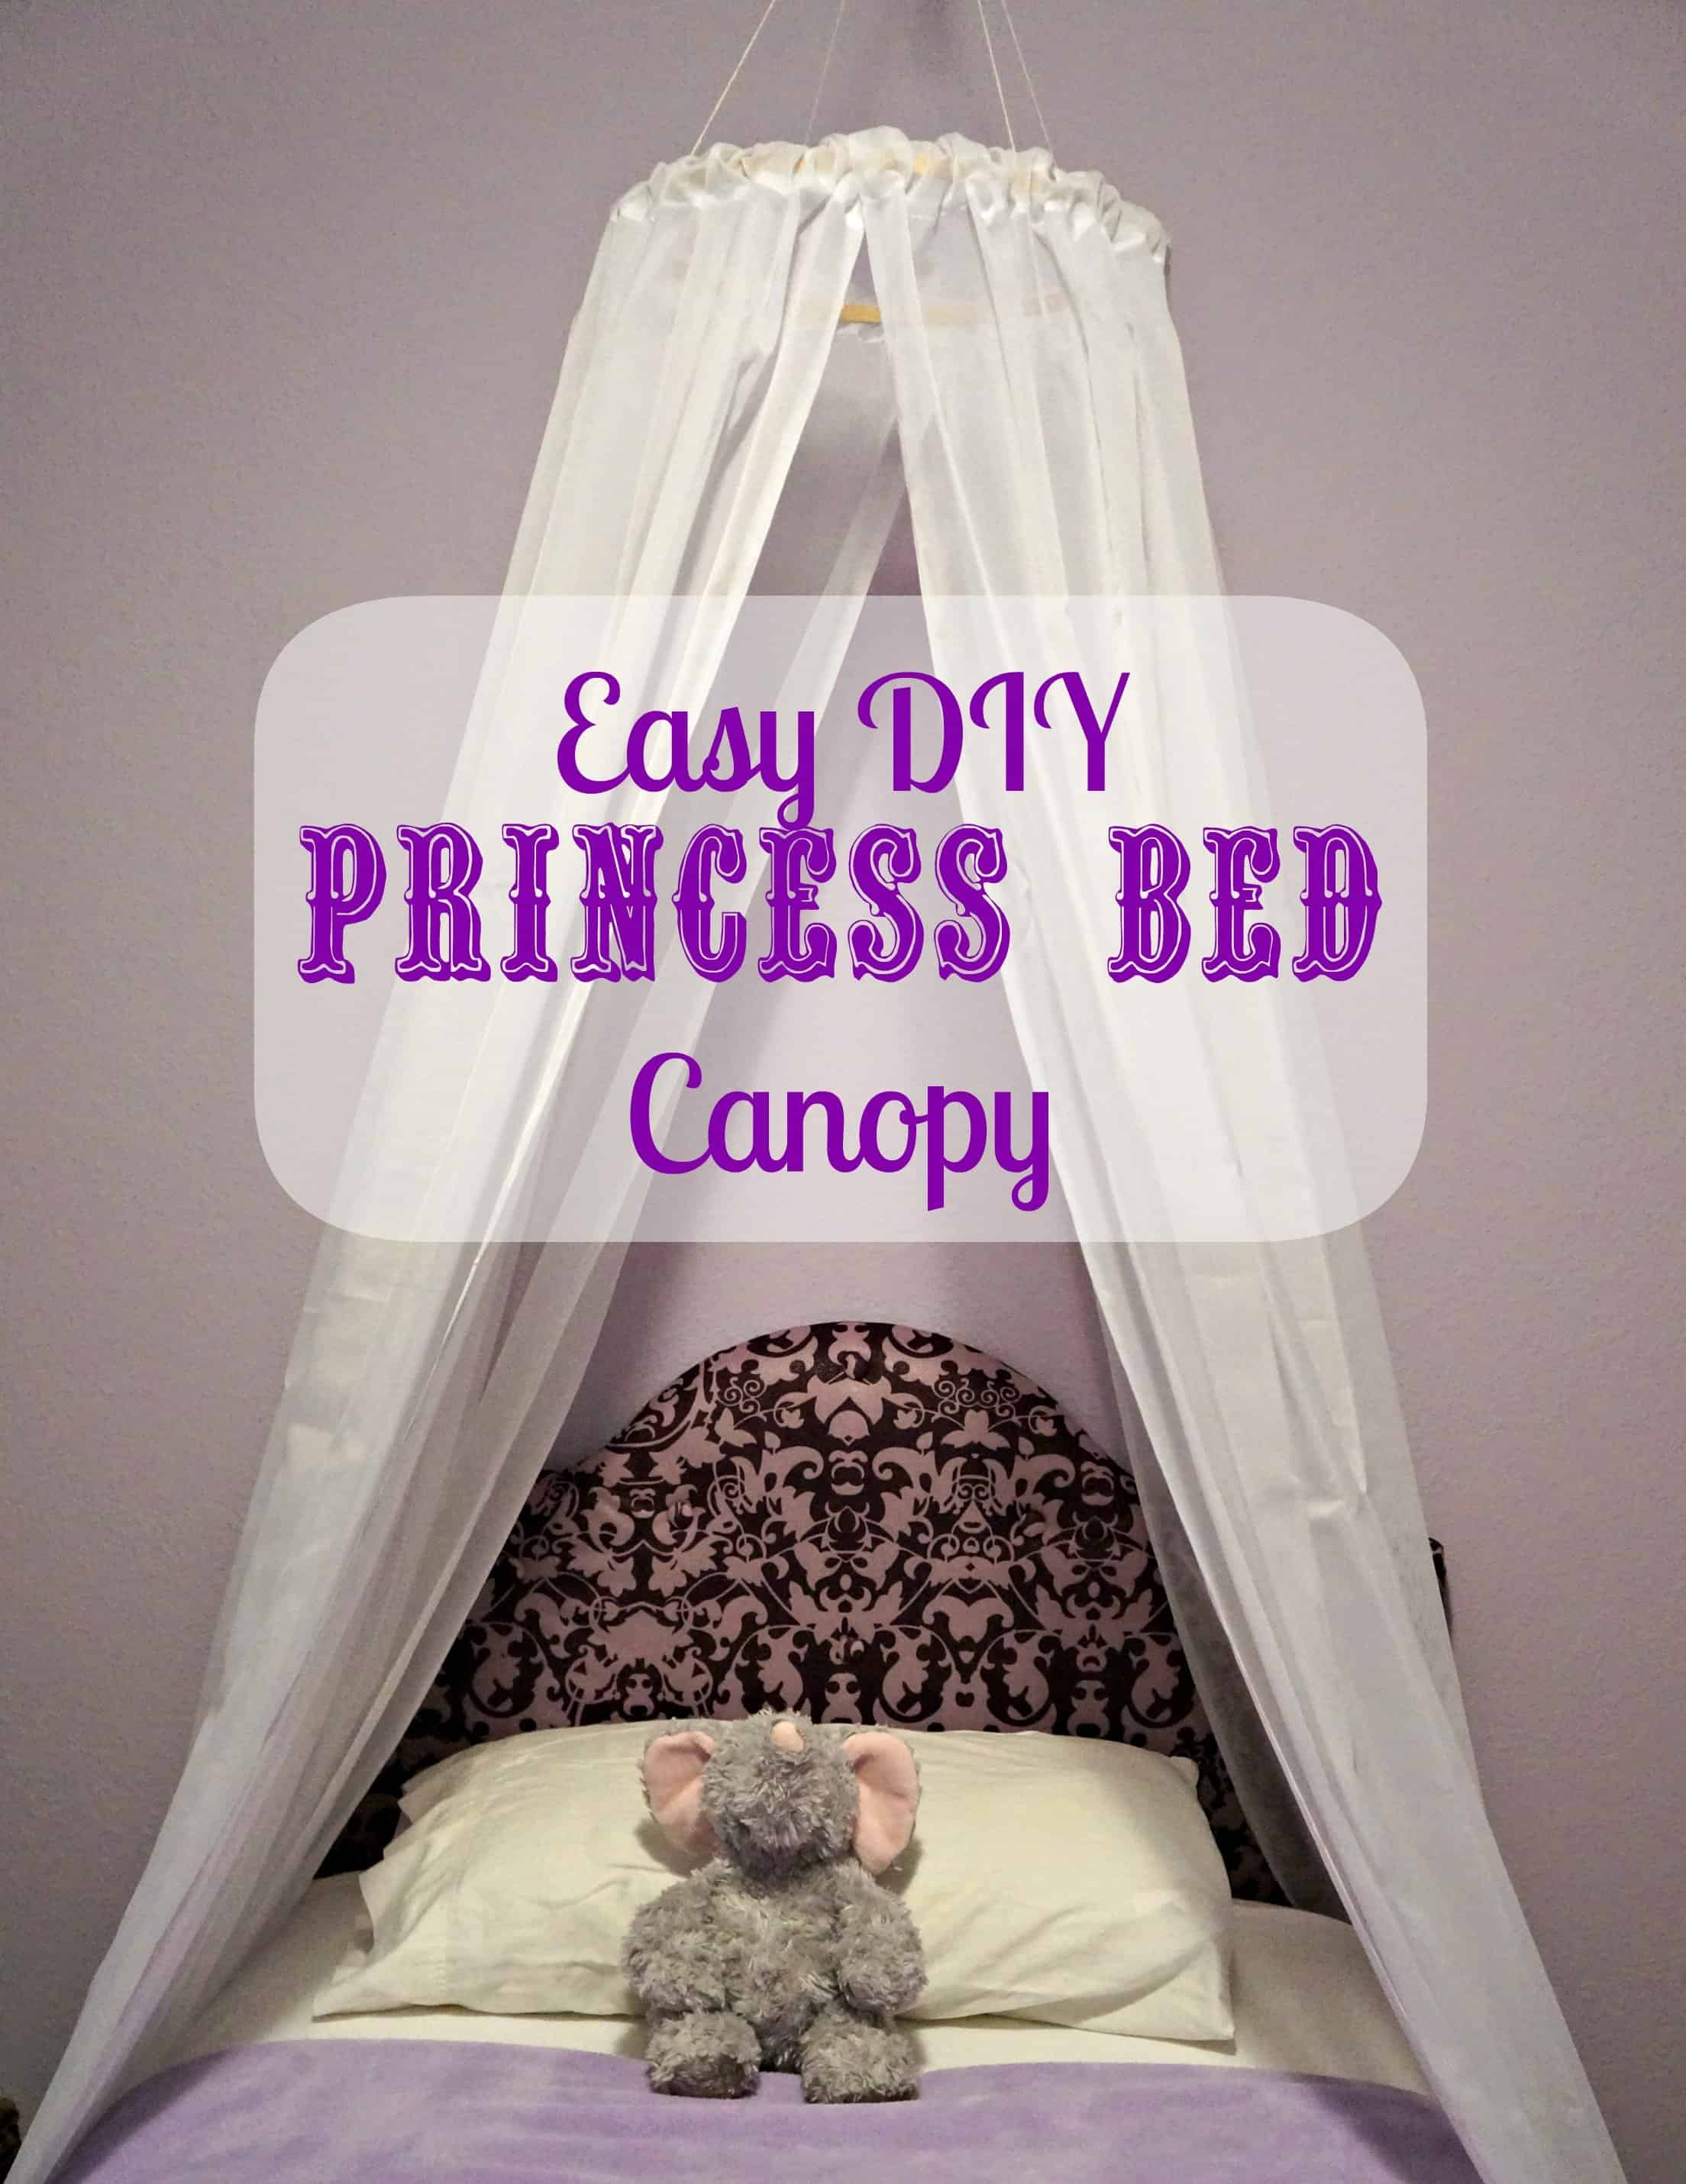 Easy DIY princess bed canopy. No sew comes together in under 10 minutes. : canopy for princess bed - memphite.com